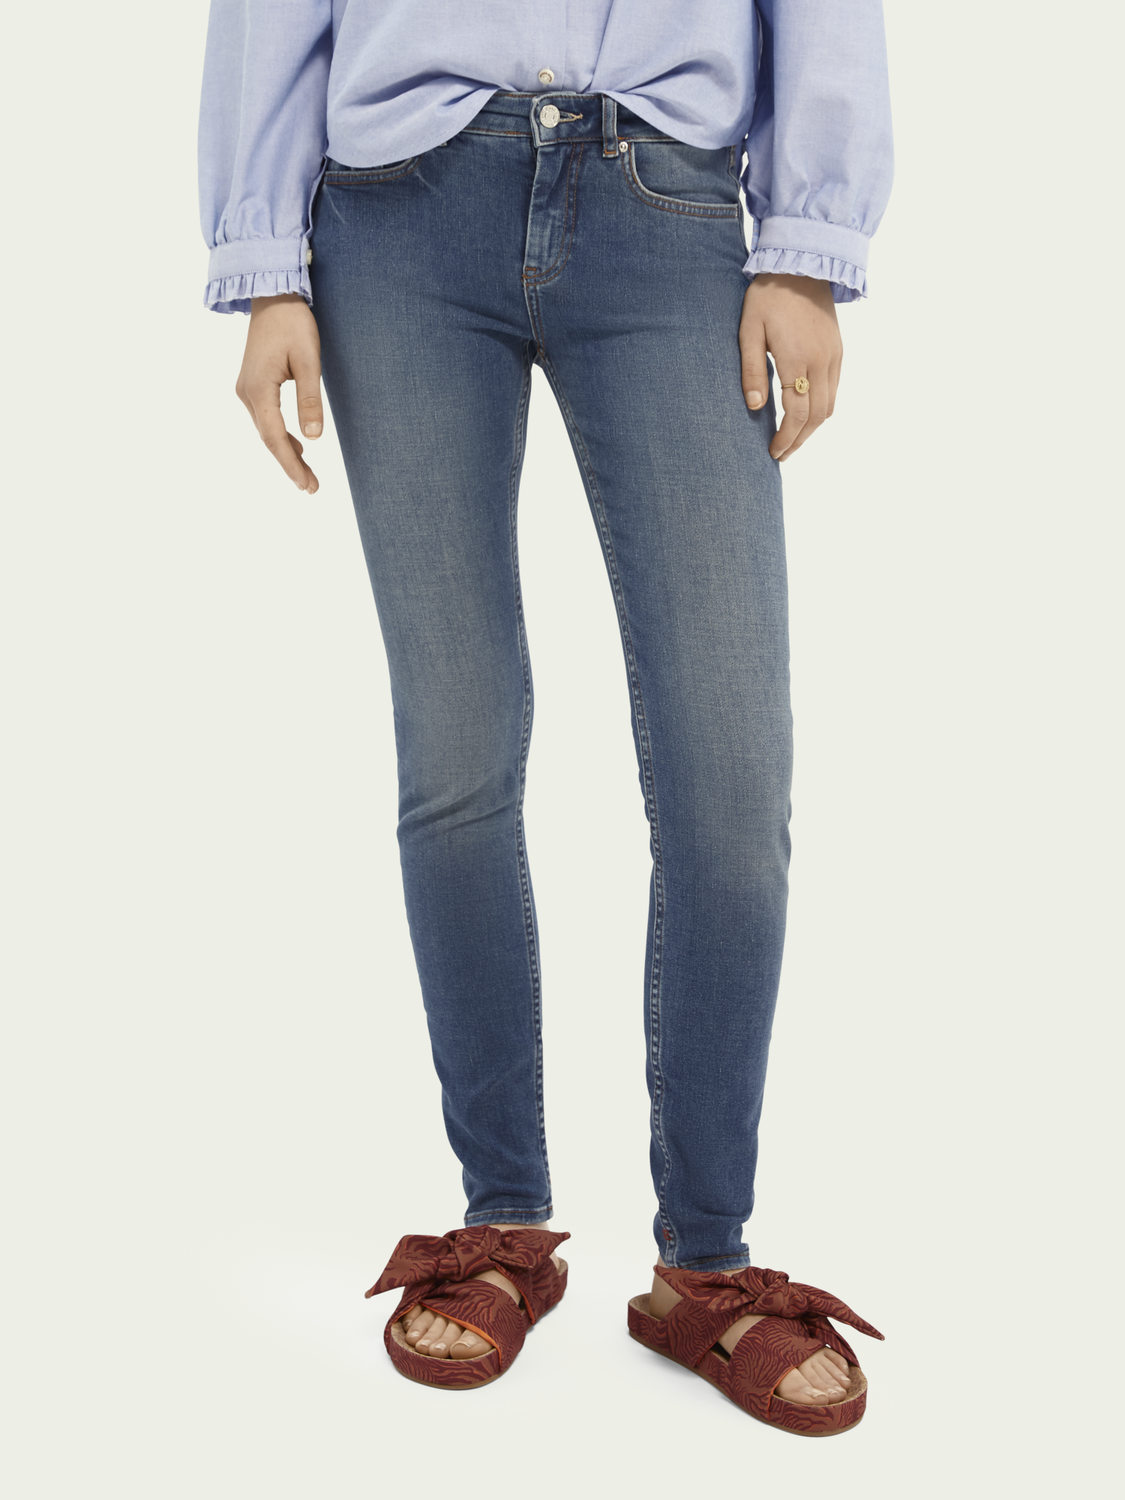 Dames La Bohemienne mid rise skinny jeans – Remember Remember